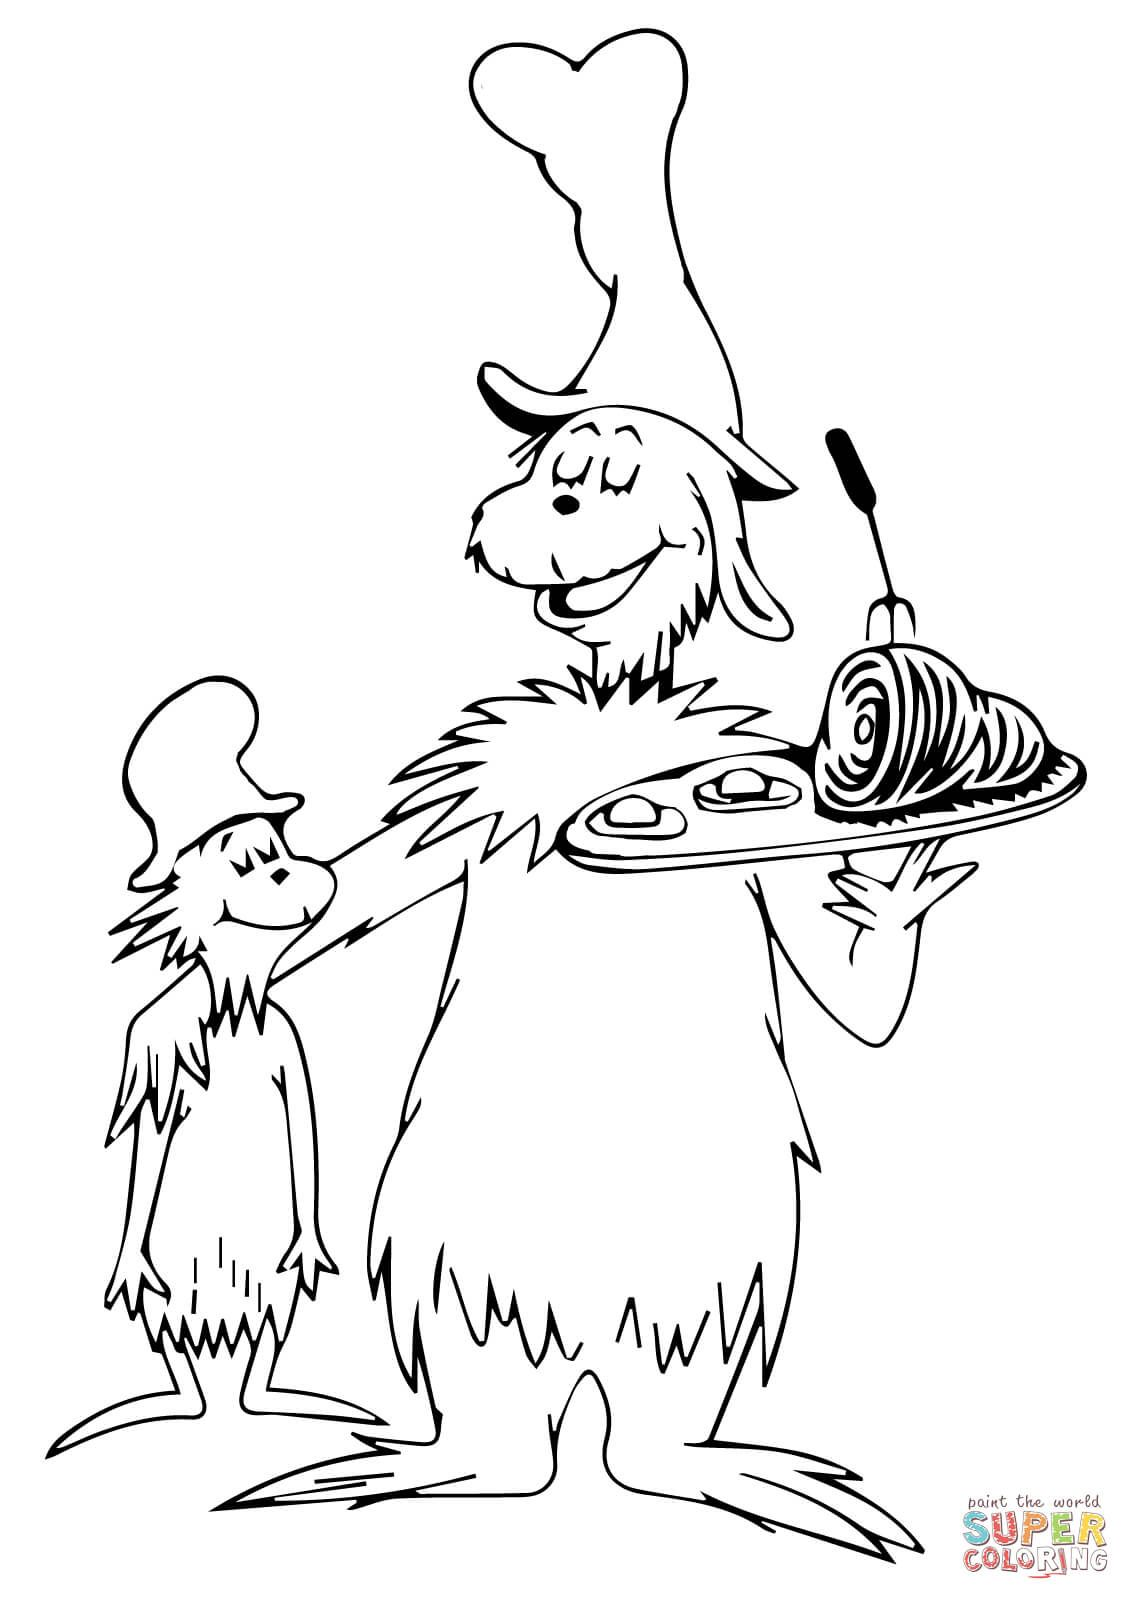 Green eggs and ham coloring page Preschool Ideas Dr